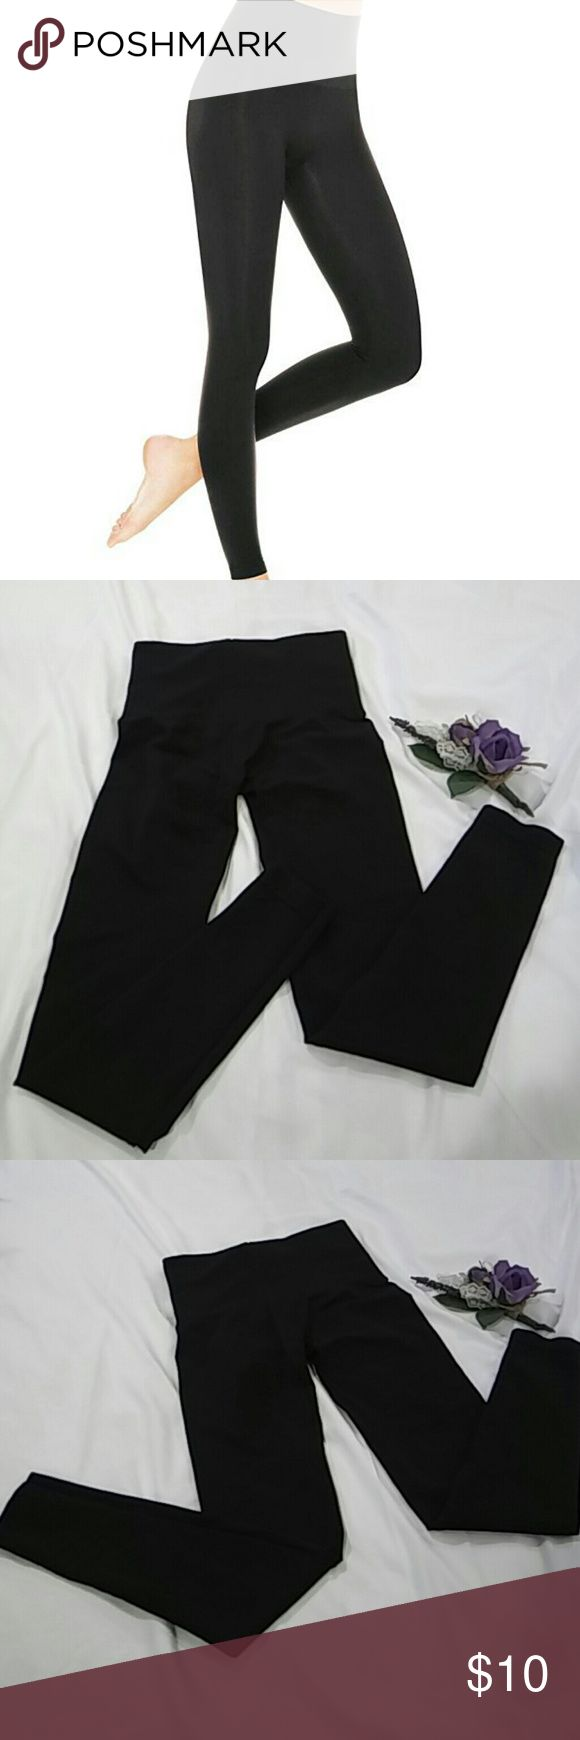 💲❤SALE! ❤💲Spanx assets leggings Spanx high waisted seamless leggings designed to make the legs appear visually smaller Assets By Spanx Pants Leggings